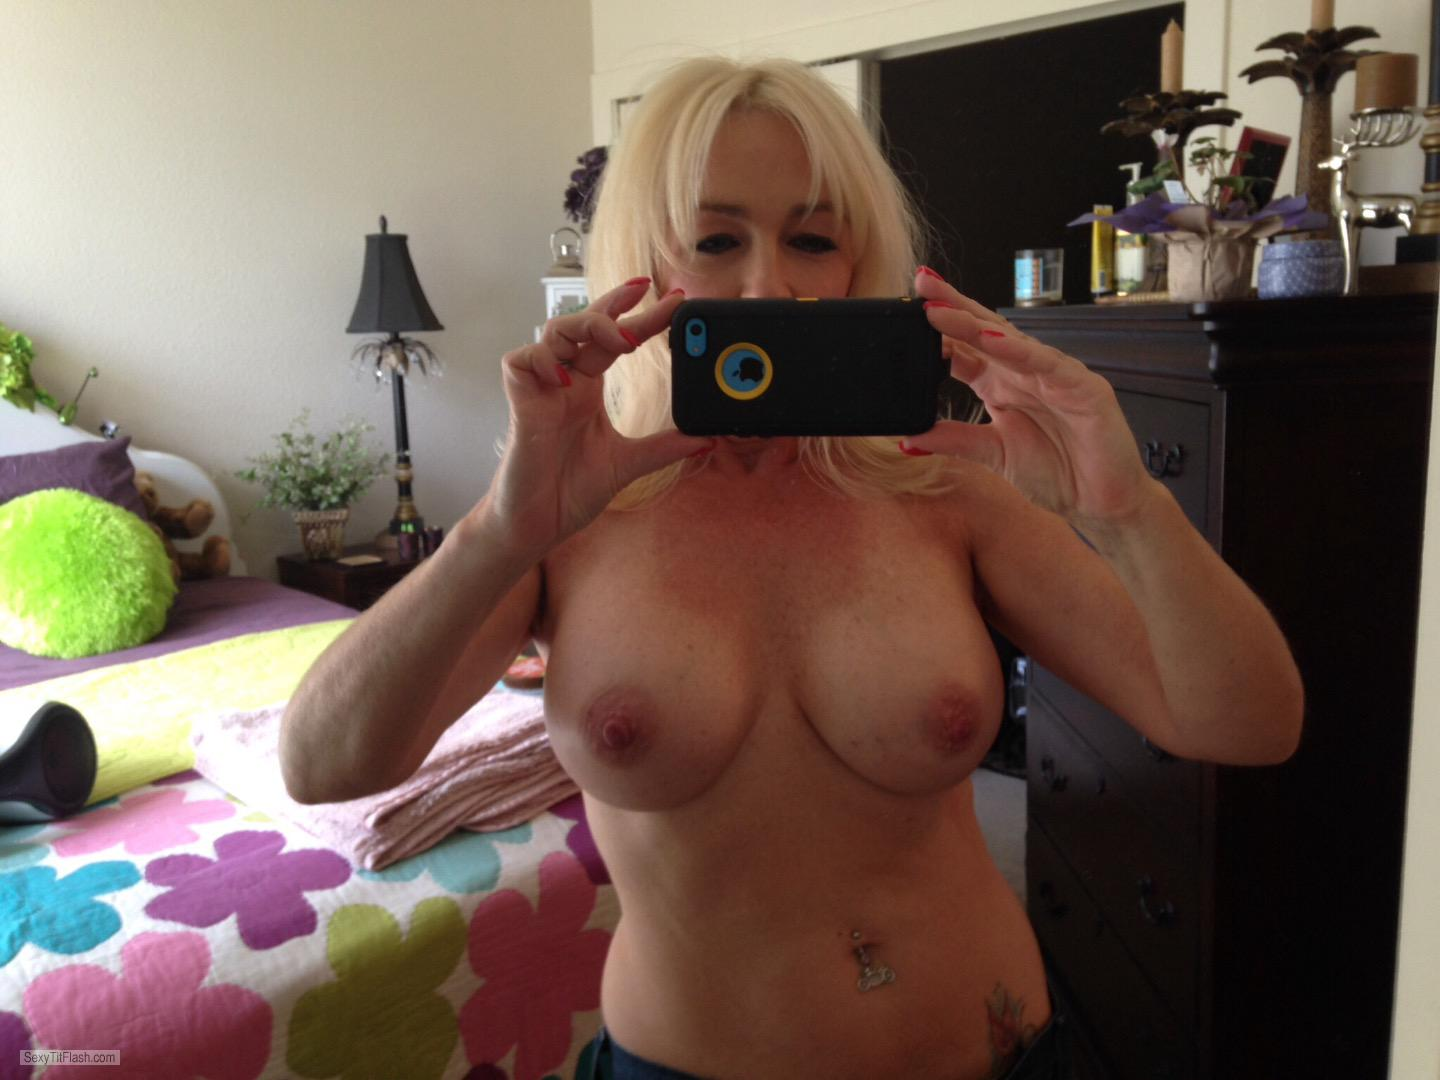 My Medium Tits Selfie by Thotchic